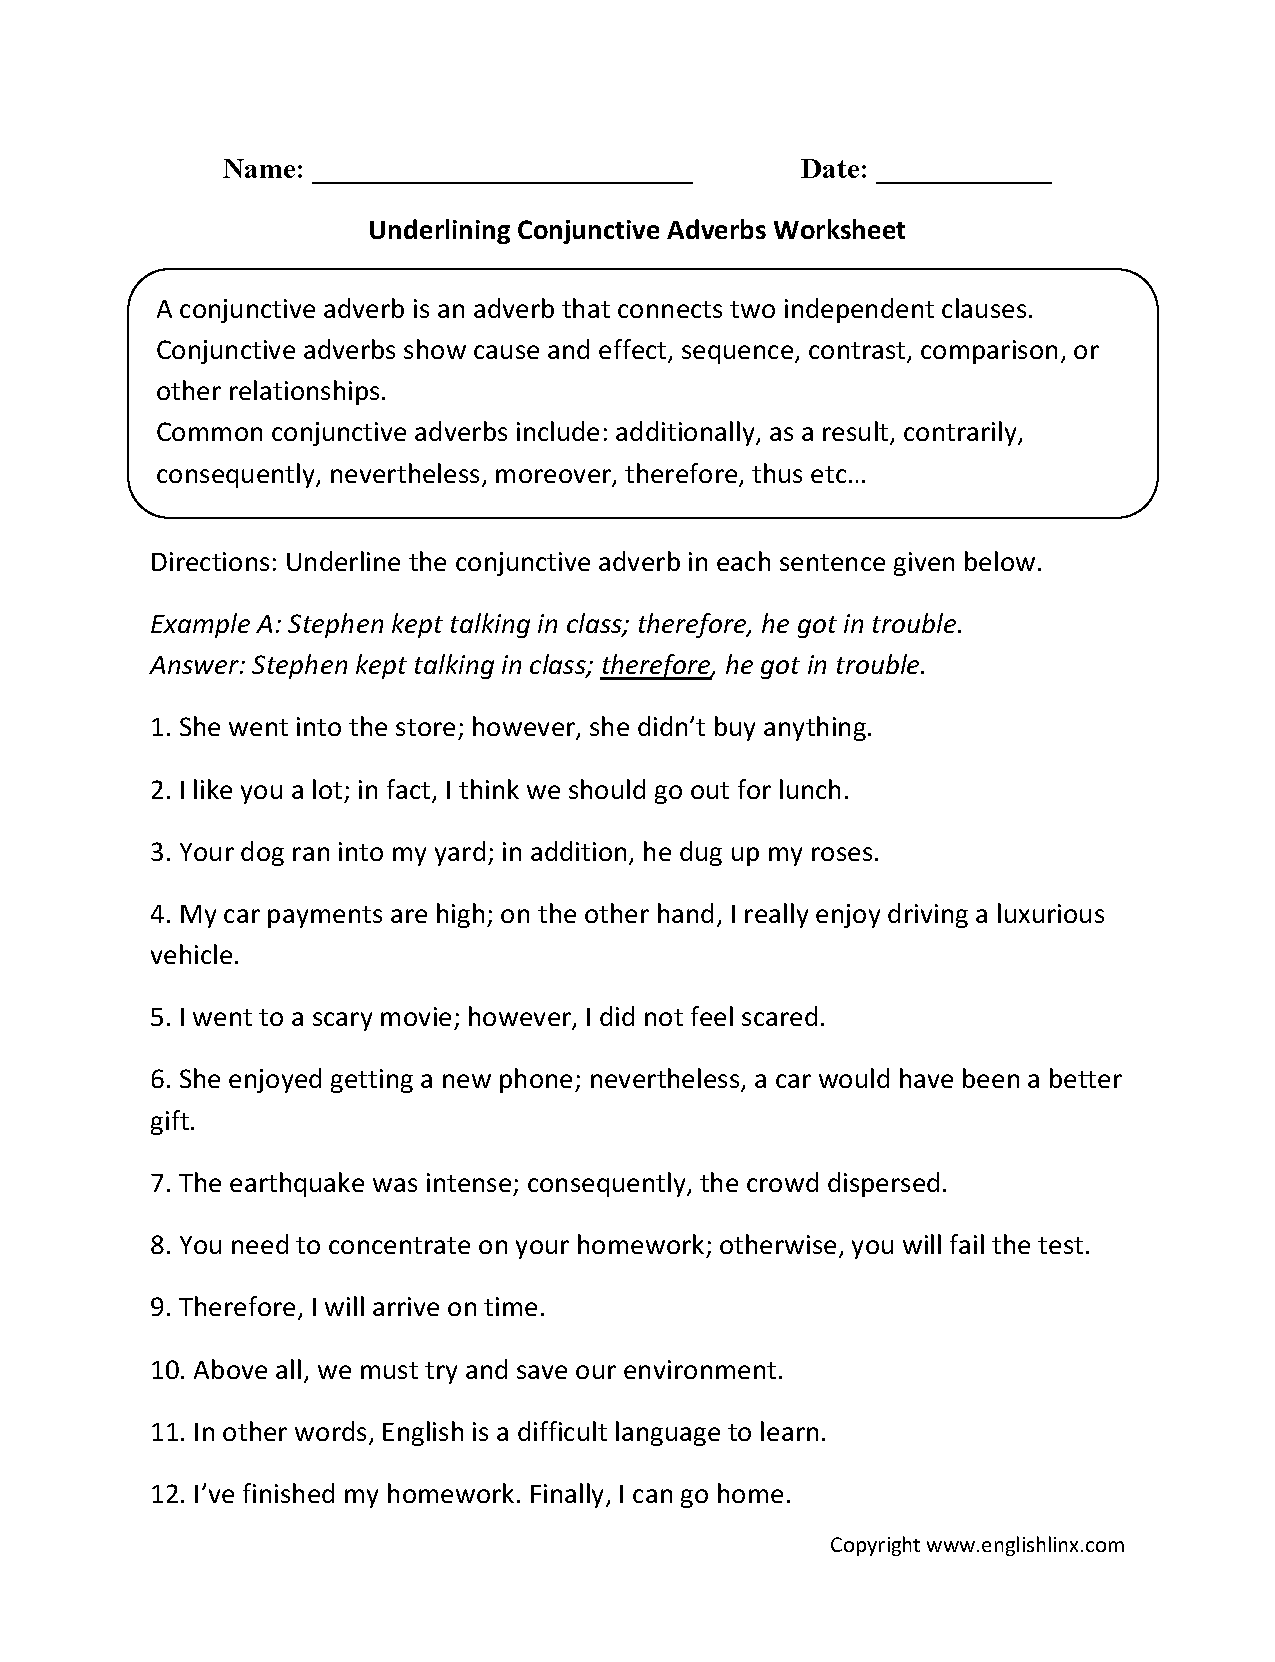 Aldiablosus  Fascinating Englishlinxcom  Conjunctions Worksheets With Fair Worksheet With Adorable Worksheets On Force Also Oi Phonics Worksheets In Addition Percentages Worksheets Ks And Customary Conversion Worksheets As Well As English Worksheets For Primary  Additionally English Writing Worksheet From Englishlinxcom With Aldiablosus  Fair Englishlinxcom  Conjunctions Worksheets With Adorable Worksheet And Fascinating Worksheets On Force Also Oi Phonics Worksheets In Addition Percentages Worksheets Ks From Englishlinxcom